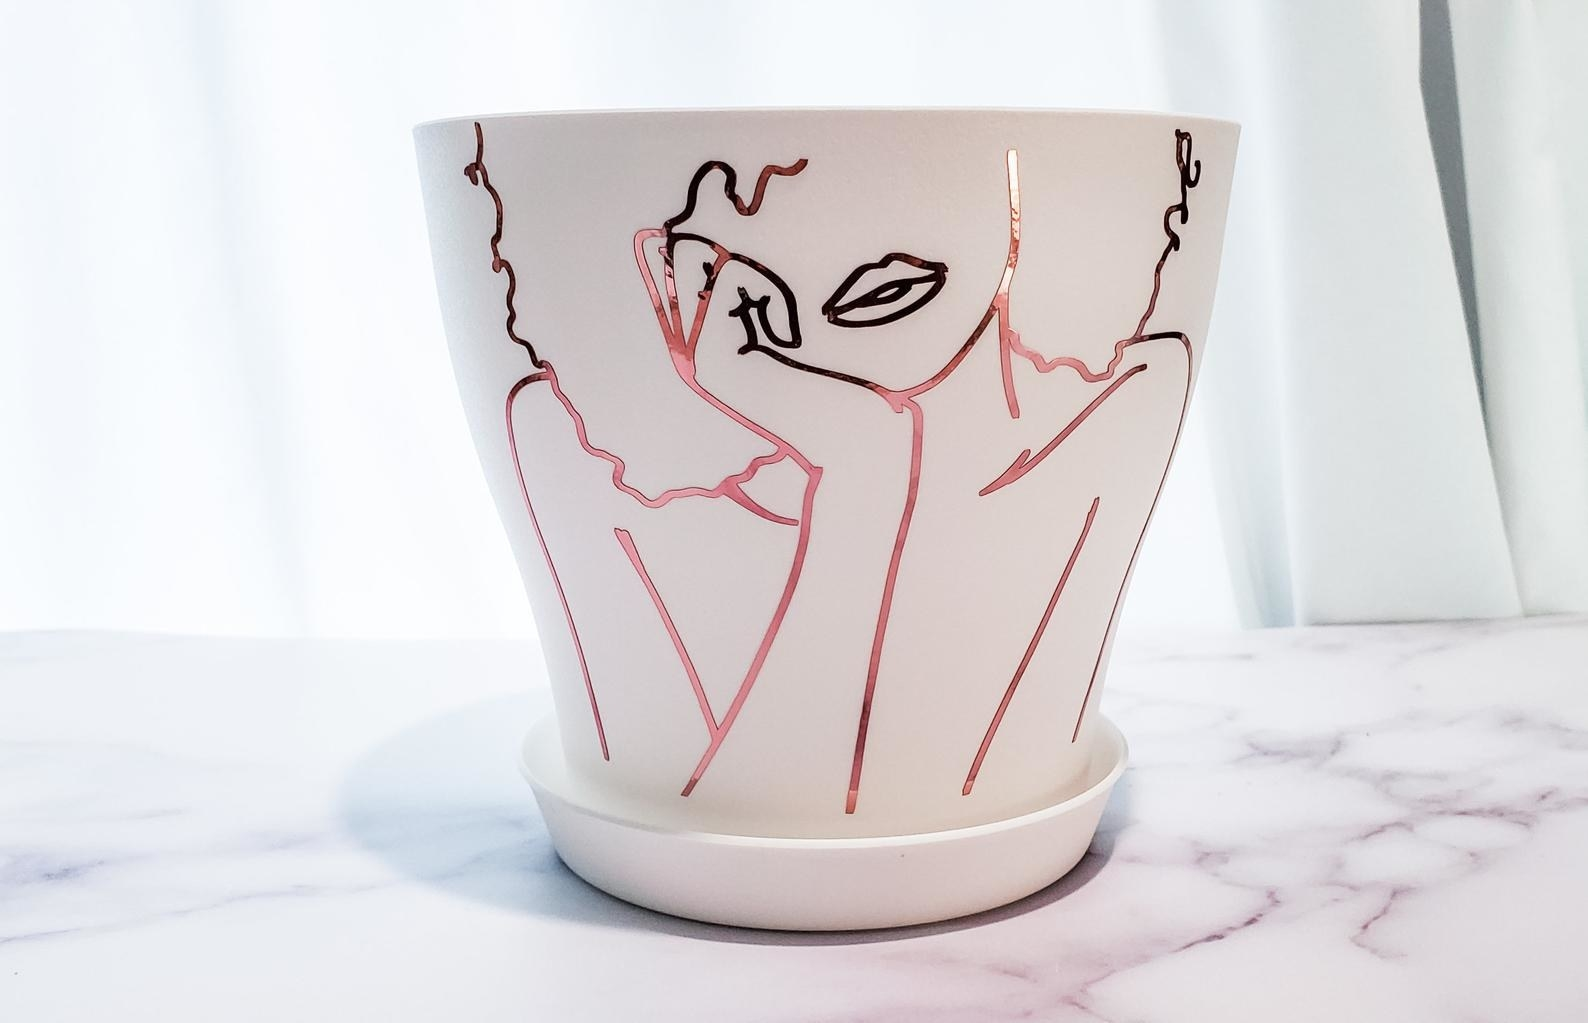 A white plastic planter with line vinyl design in rose gold of a person with their head resting in their hands